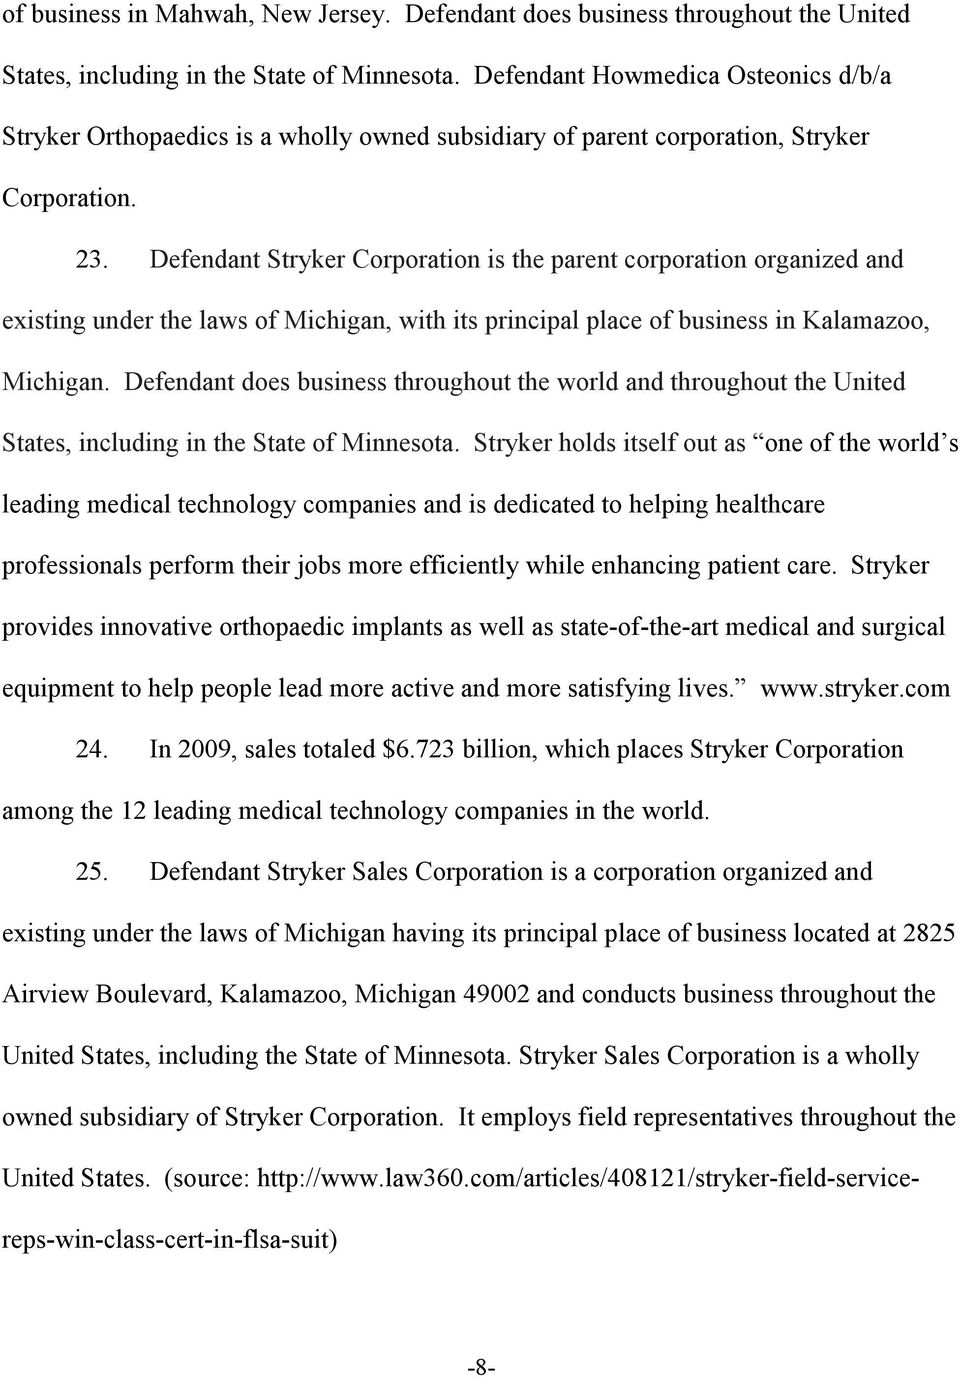 Defendant Stryker Corporation is the parent corporation organized and existing under the laws of Michigan, with its principal place of business in Kalamazoo, Michigan.